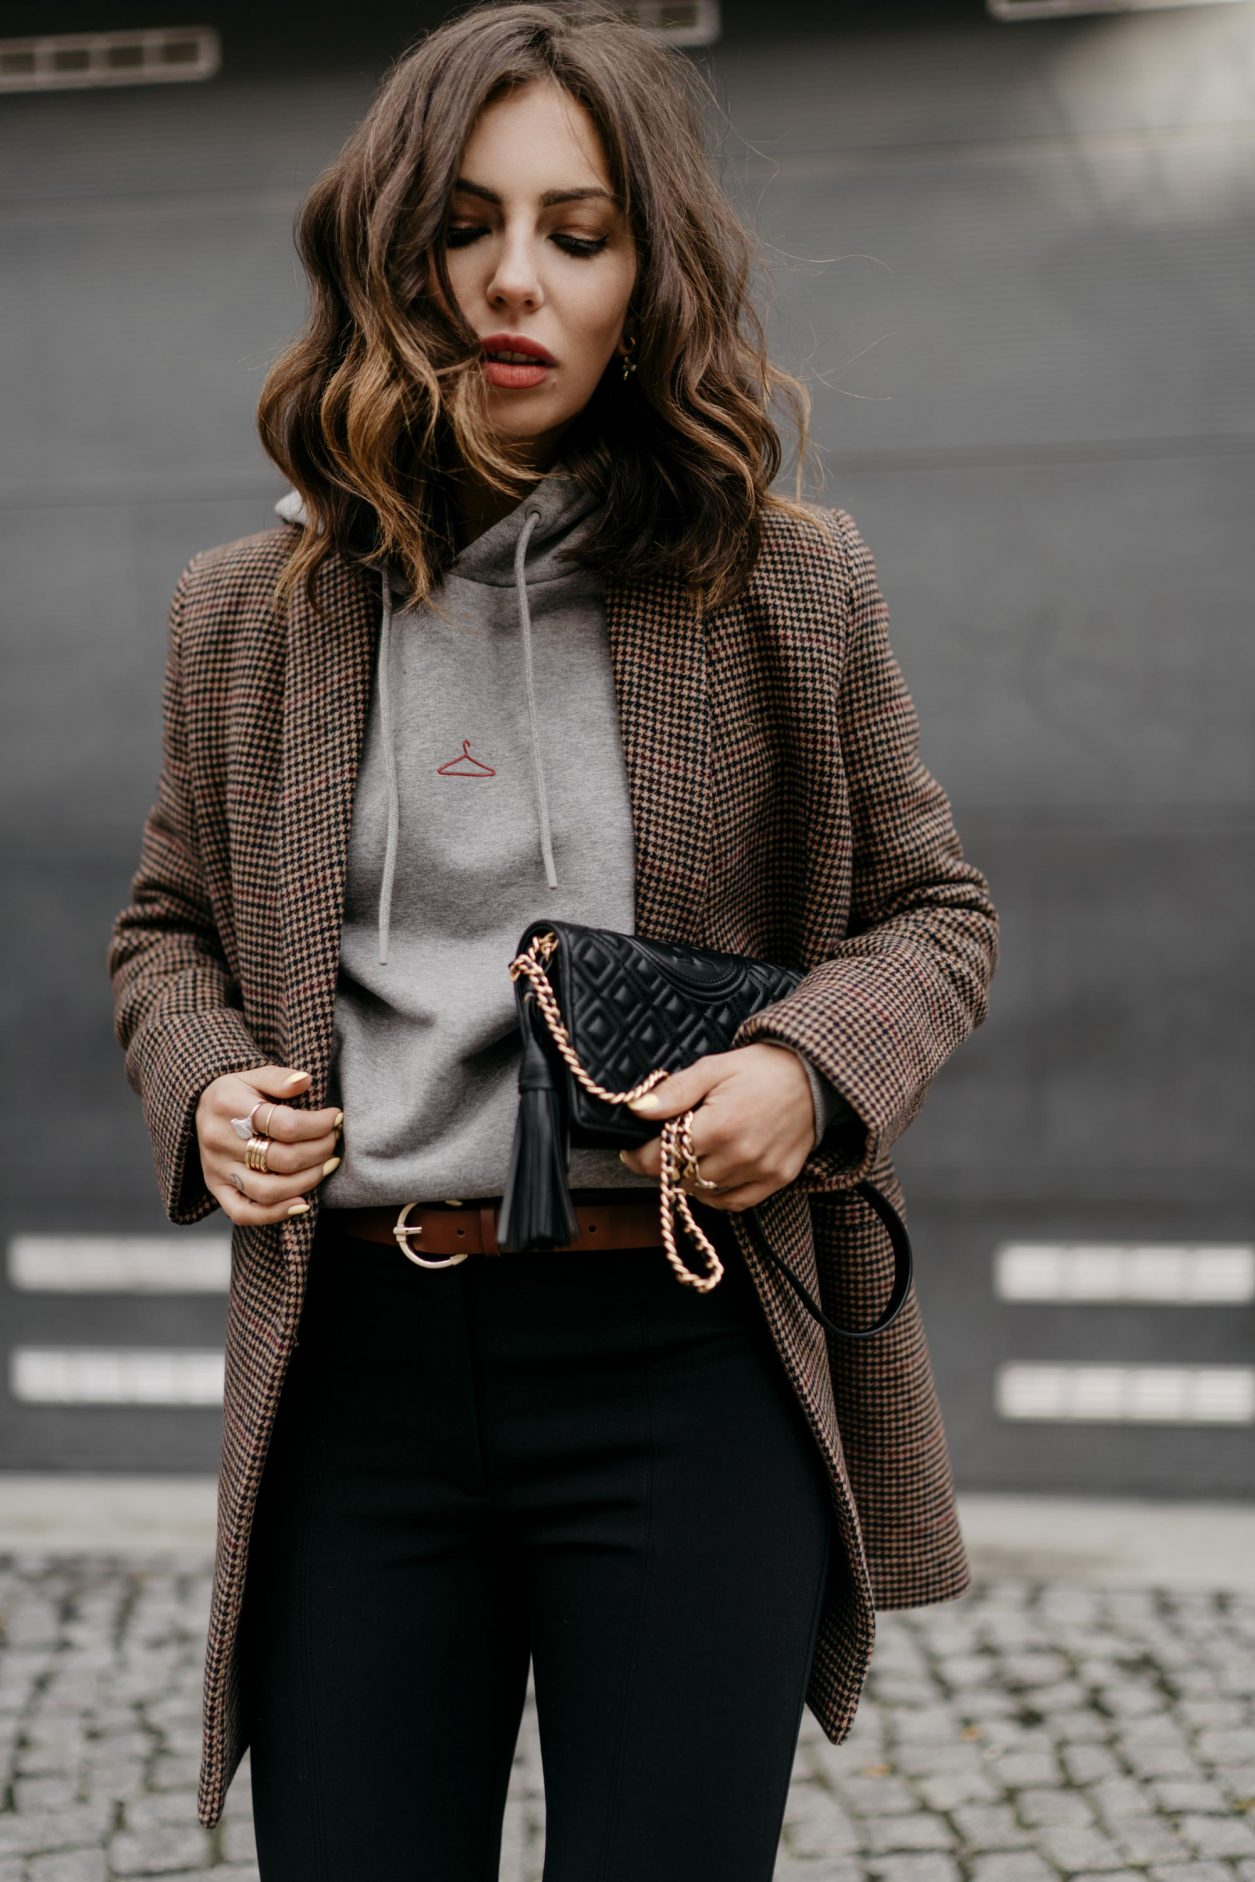 Streetstyle by Masha Sedgwick | Fashion blogger from Berlin, Germany | Everyday business casual outfit inspiration, wearing brown checked Samsoe Samsoe blazer, light grey logo Holzweiler hoodie, brown leather Zign belt, front splits black tailored pants by Samsoe Samsoe, Tory Burch shoulder mini bag